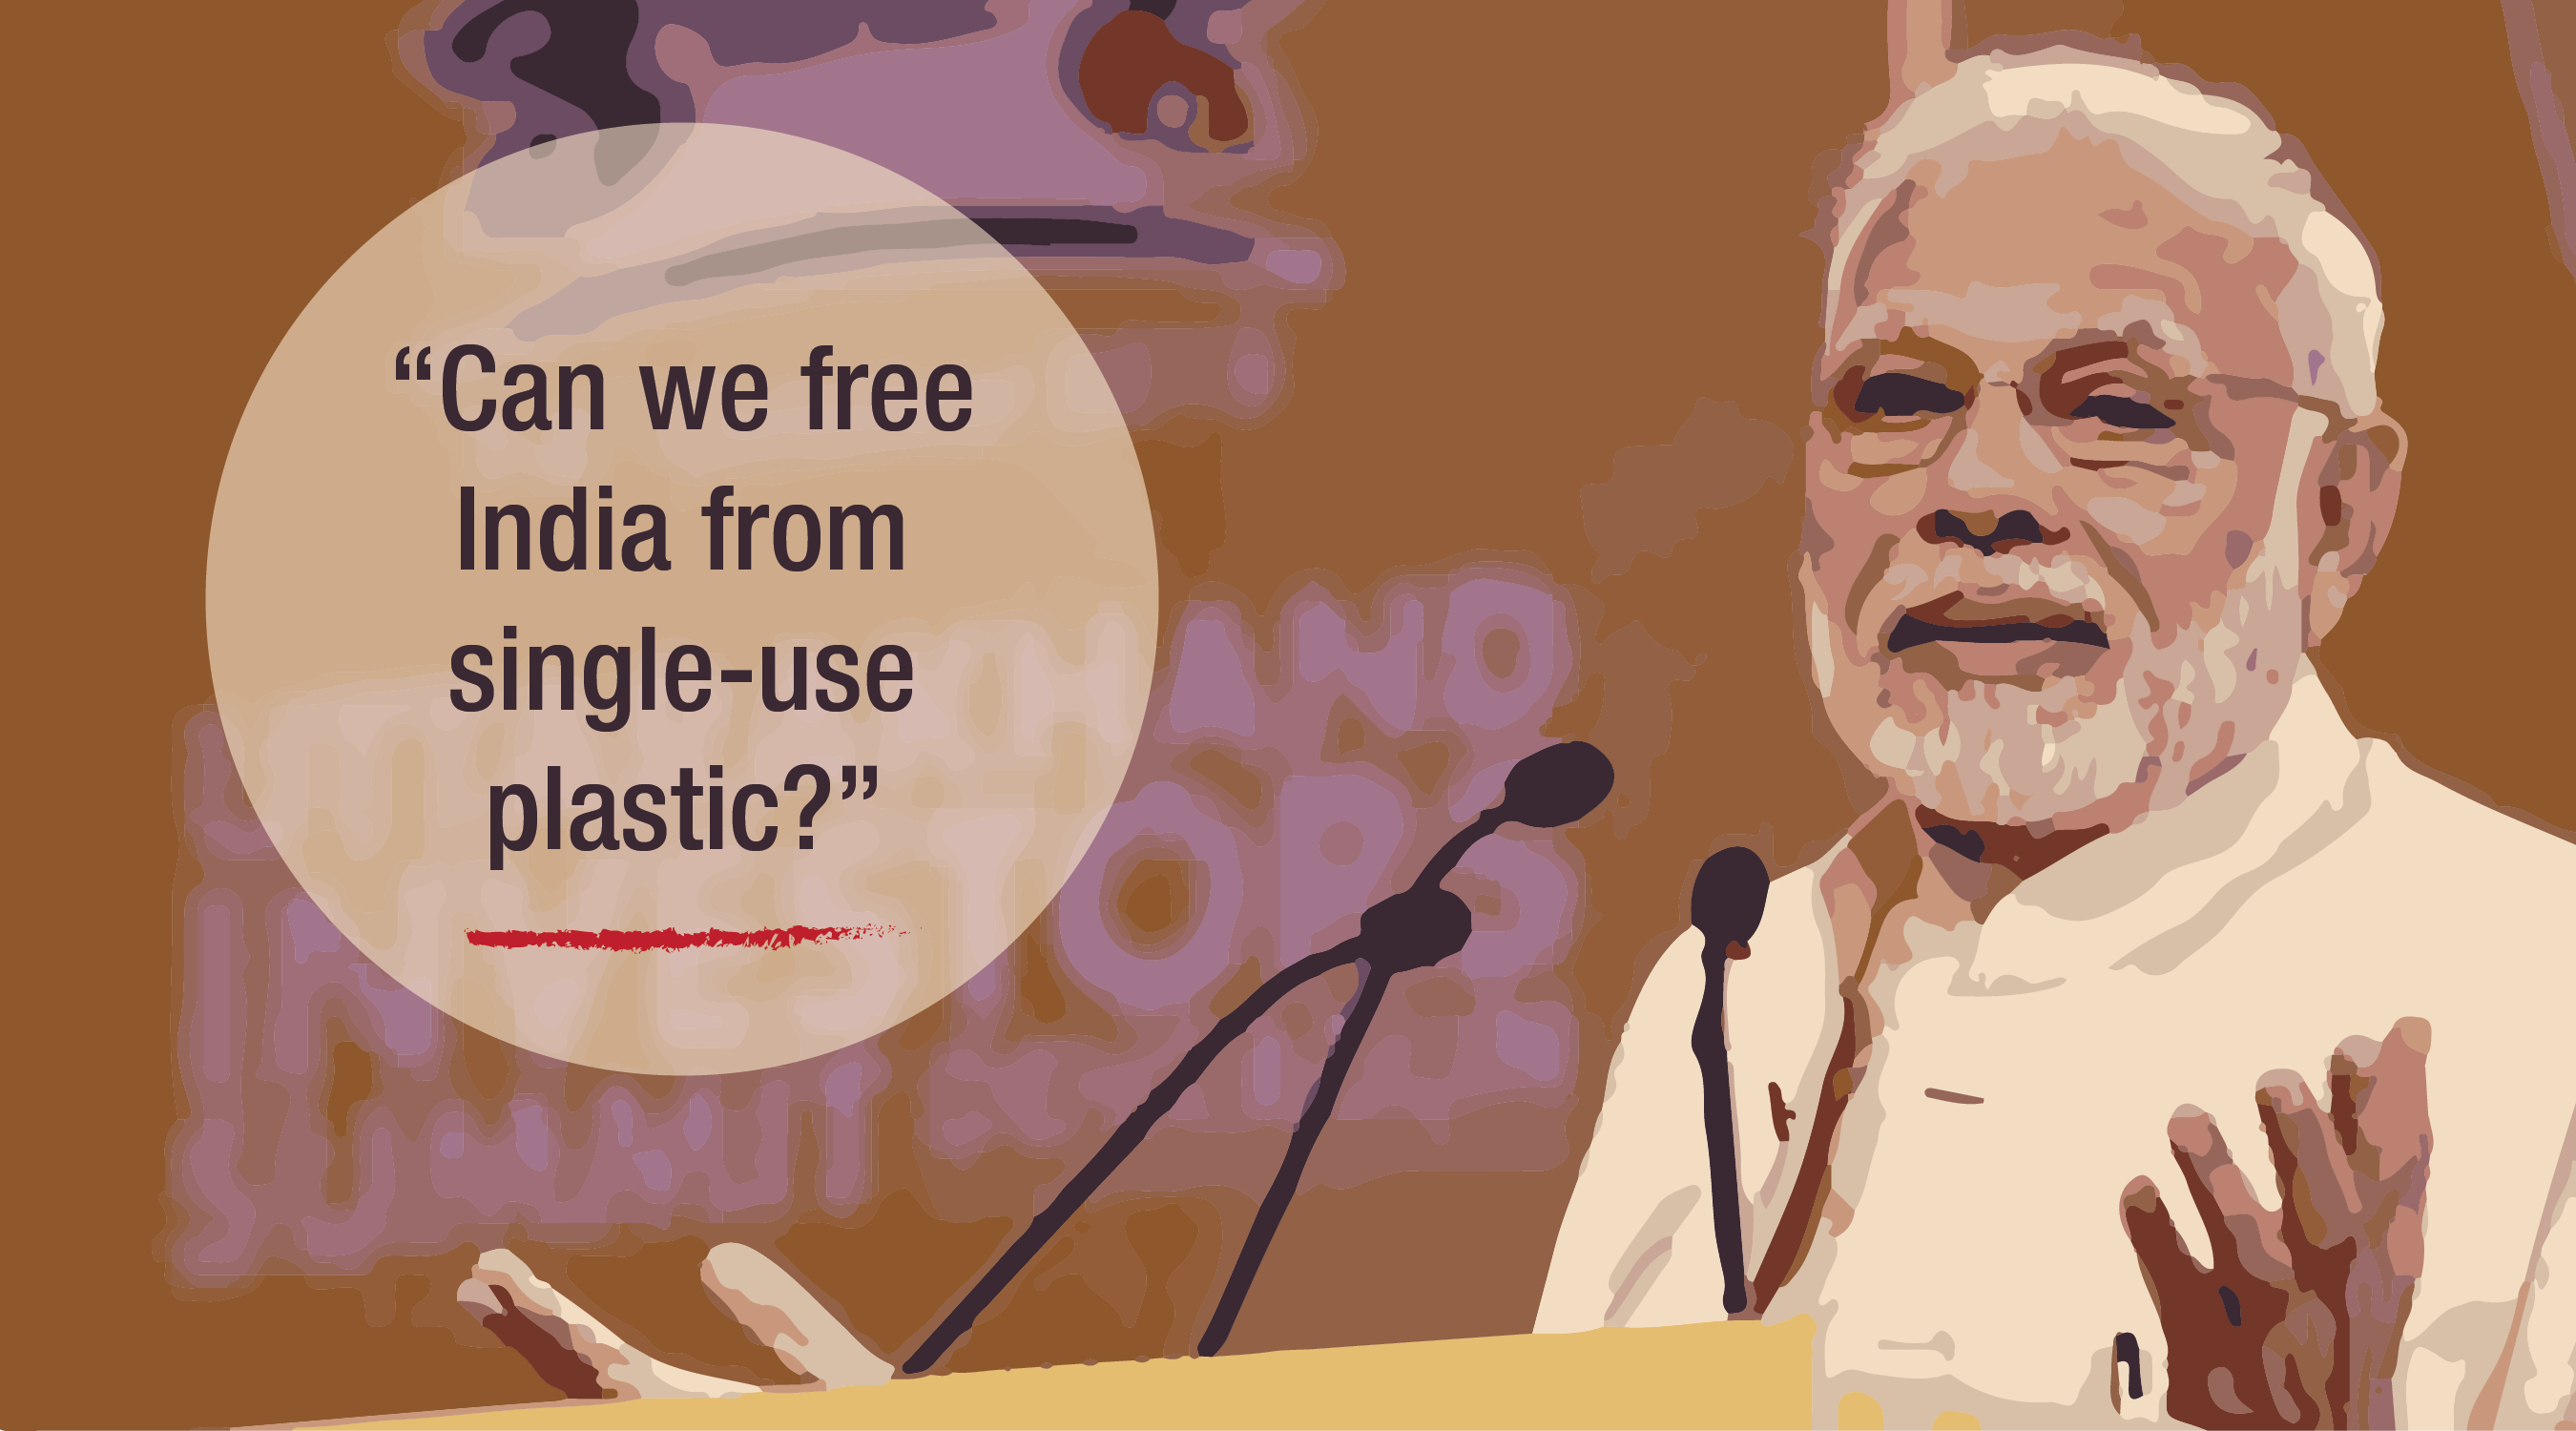 PM Modi: Can we free India from single-use plastic